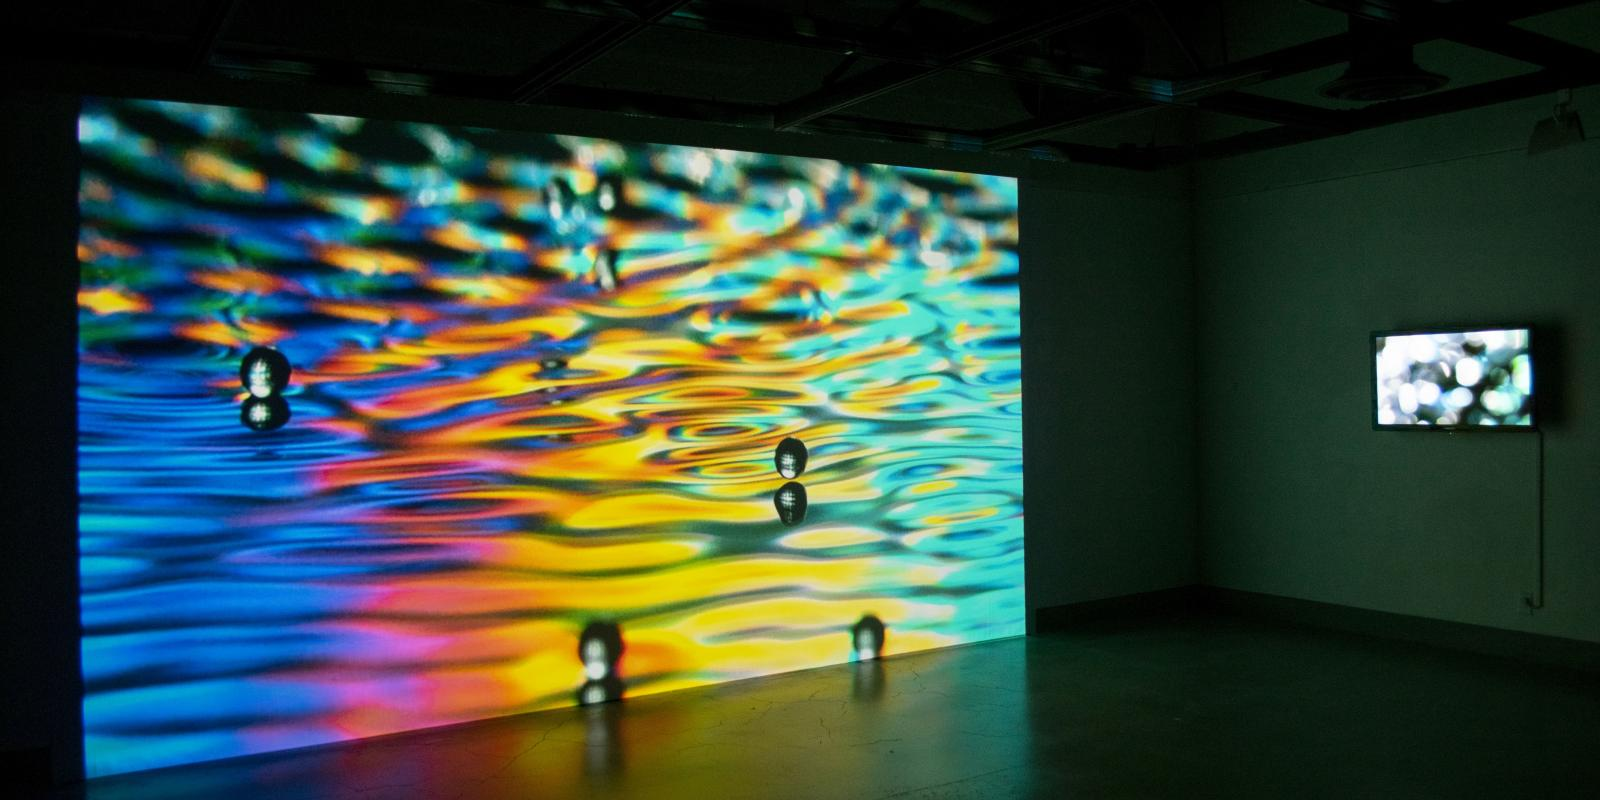 Back of gallery, Exhibition: Sasha vom Dorp: 15.15 Hz, Aug. 23 - Oct. 18, 2018, Curator: Michele Cairella Fillmore, W. Keith & Janet Kellogg Art Gallery, Cal Poly Pomona. [15.15 Hz consists of images, as well as interactive light-based, multisensory video sound installations that capture sunlight at 15.15 Hz (Photo Credit: William W. Gunn)]